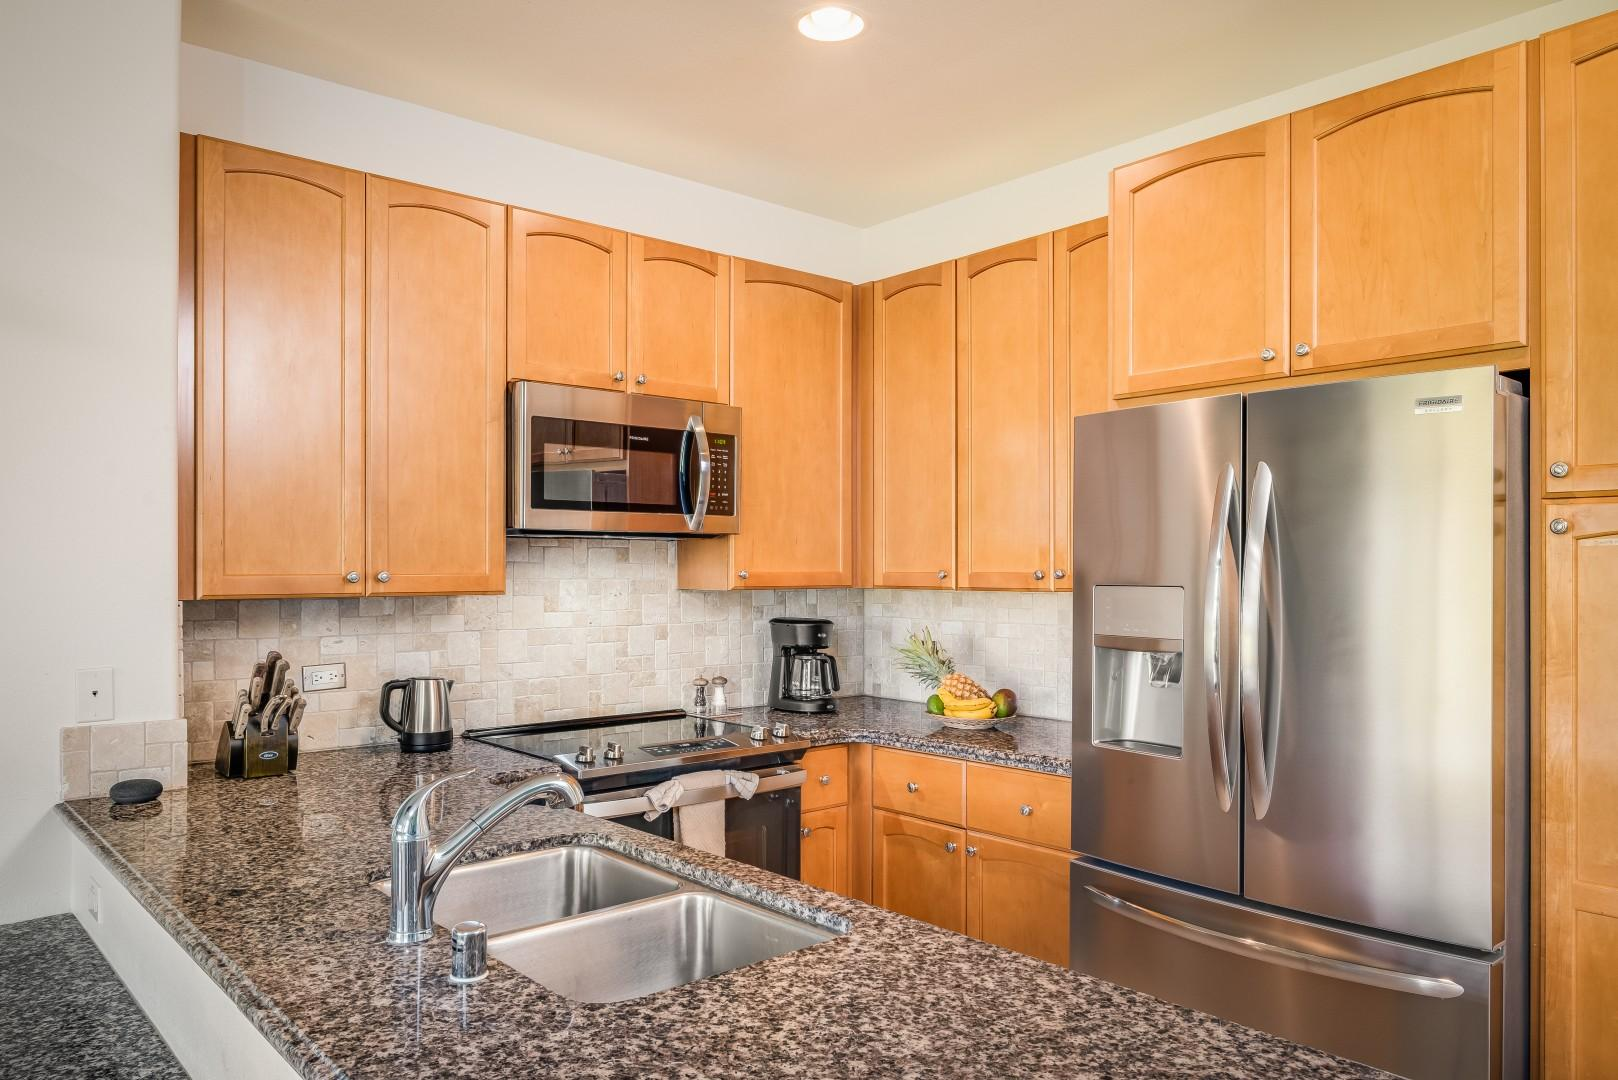 Full Kitchen w/ Granite Countertops and Updated Stainless Steel Appliances